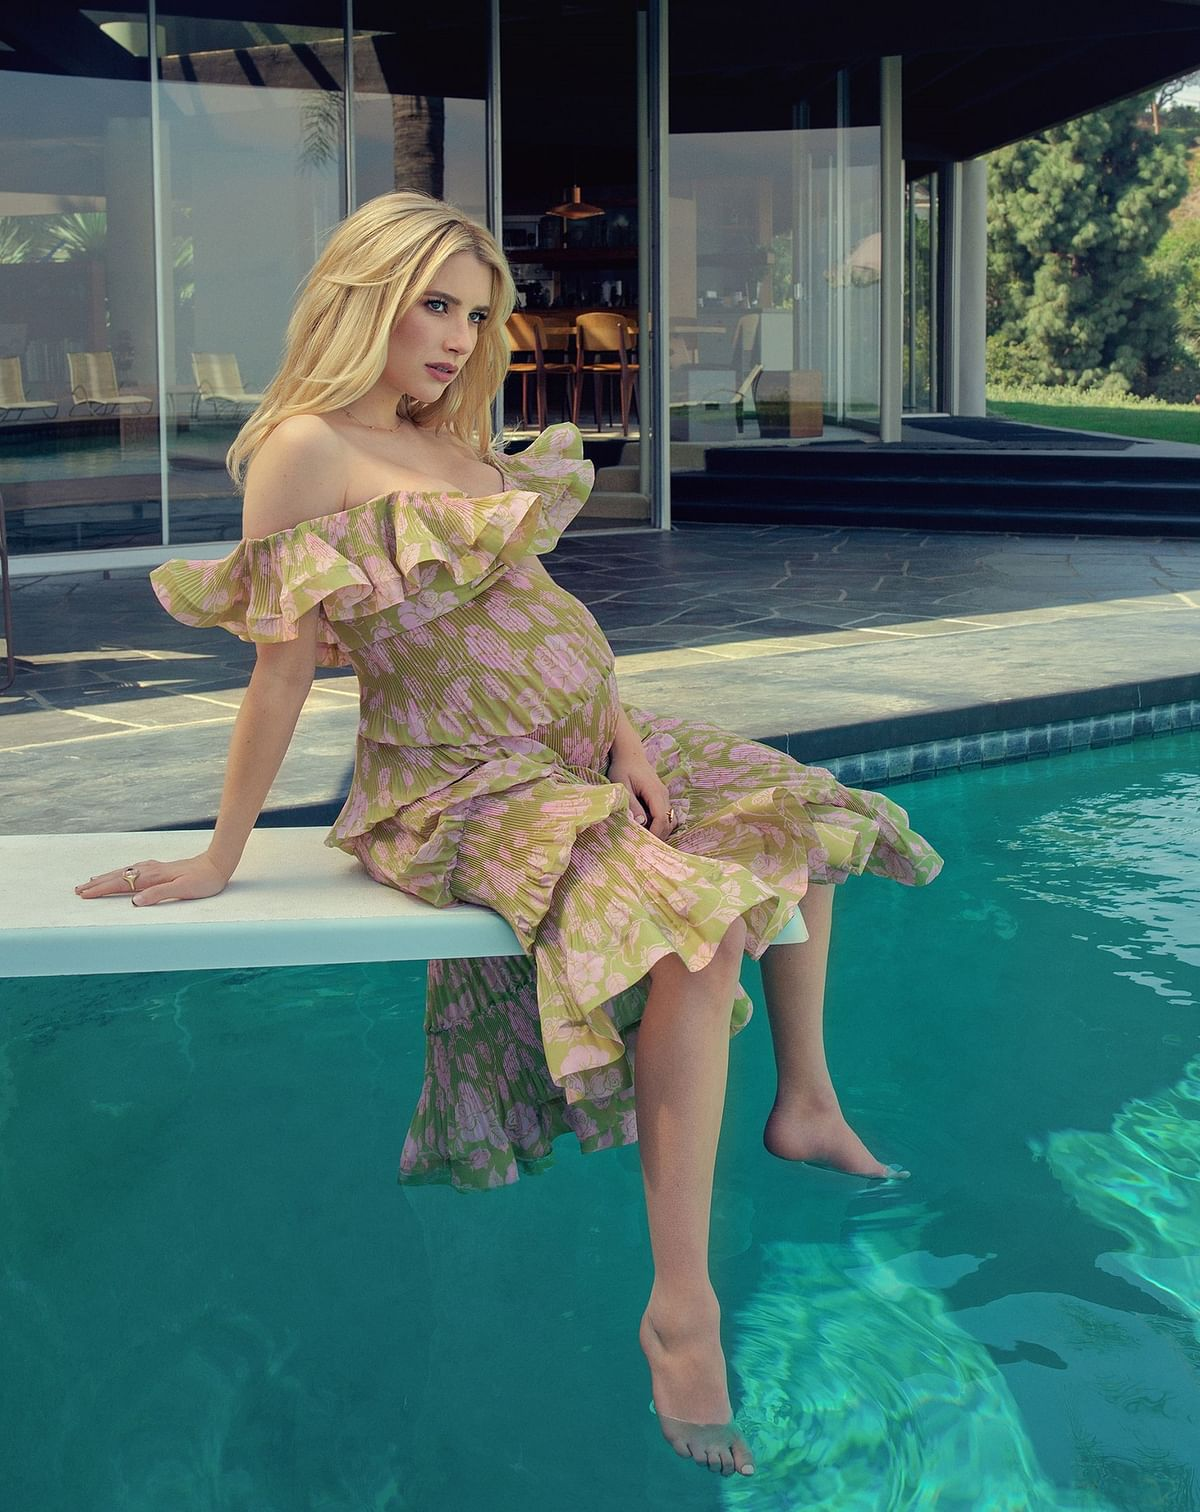 In Pics: Emma Roberts is the first pregnant woman to grace the cover of Cosmopolitan magazine